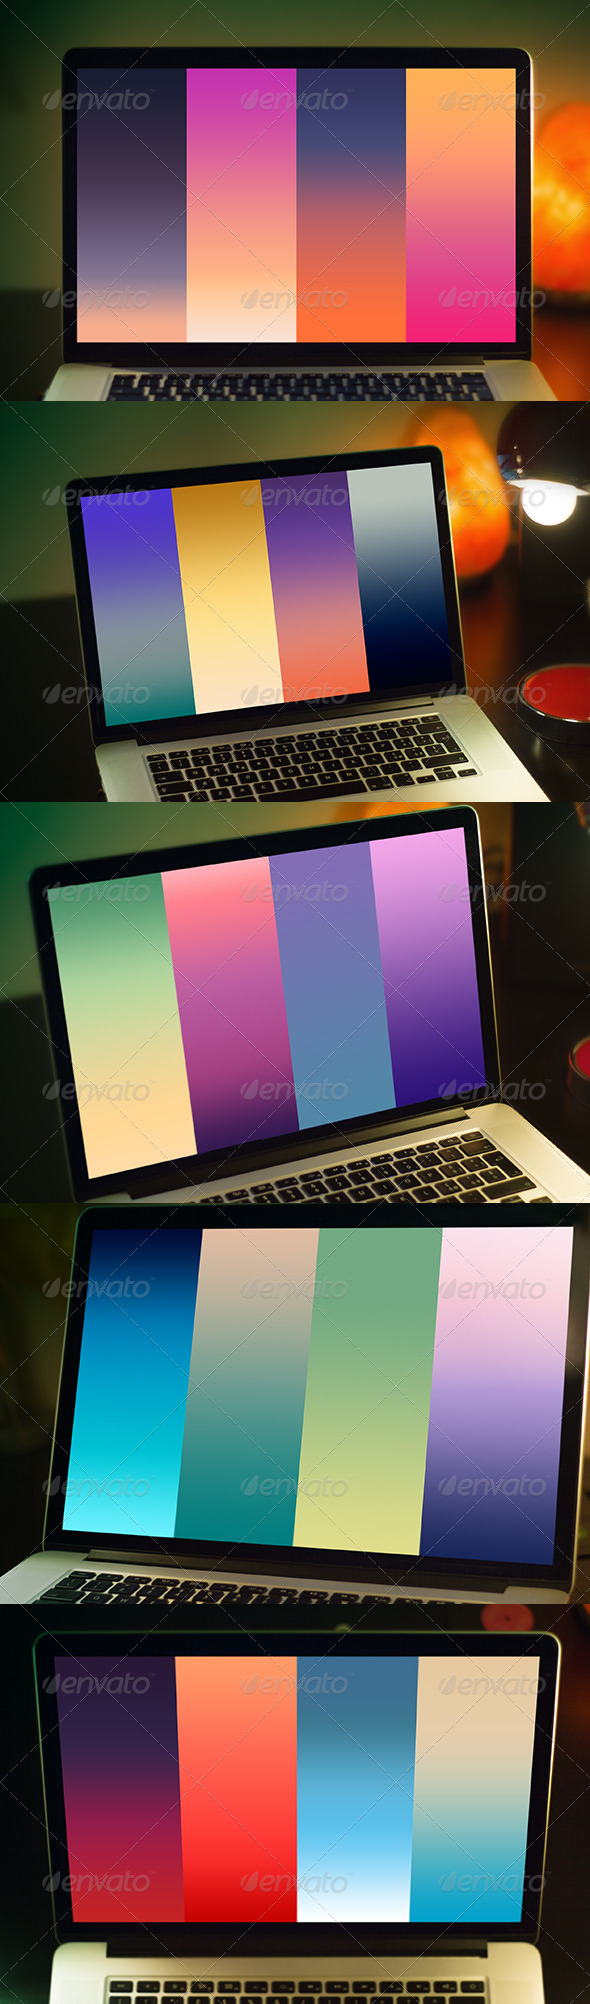 + Natural Gradients Vol. 01 Sunset and Sunrises.jpg